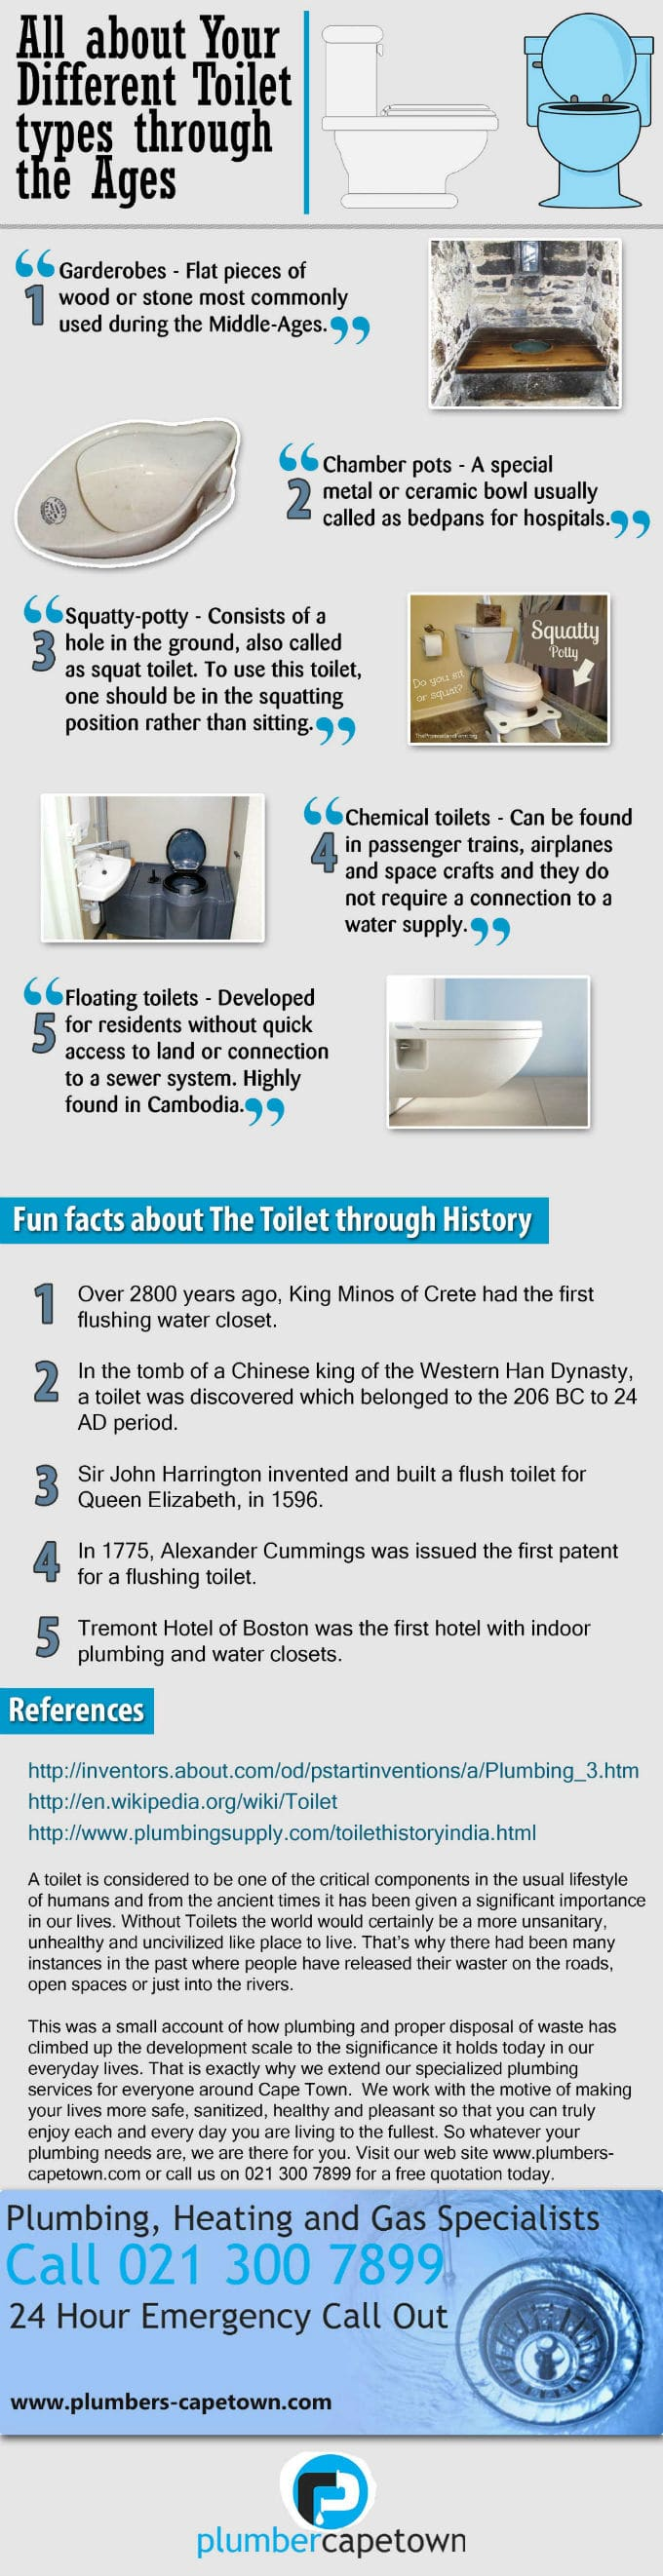 Different toilets through the ages - Plumbers Cape town